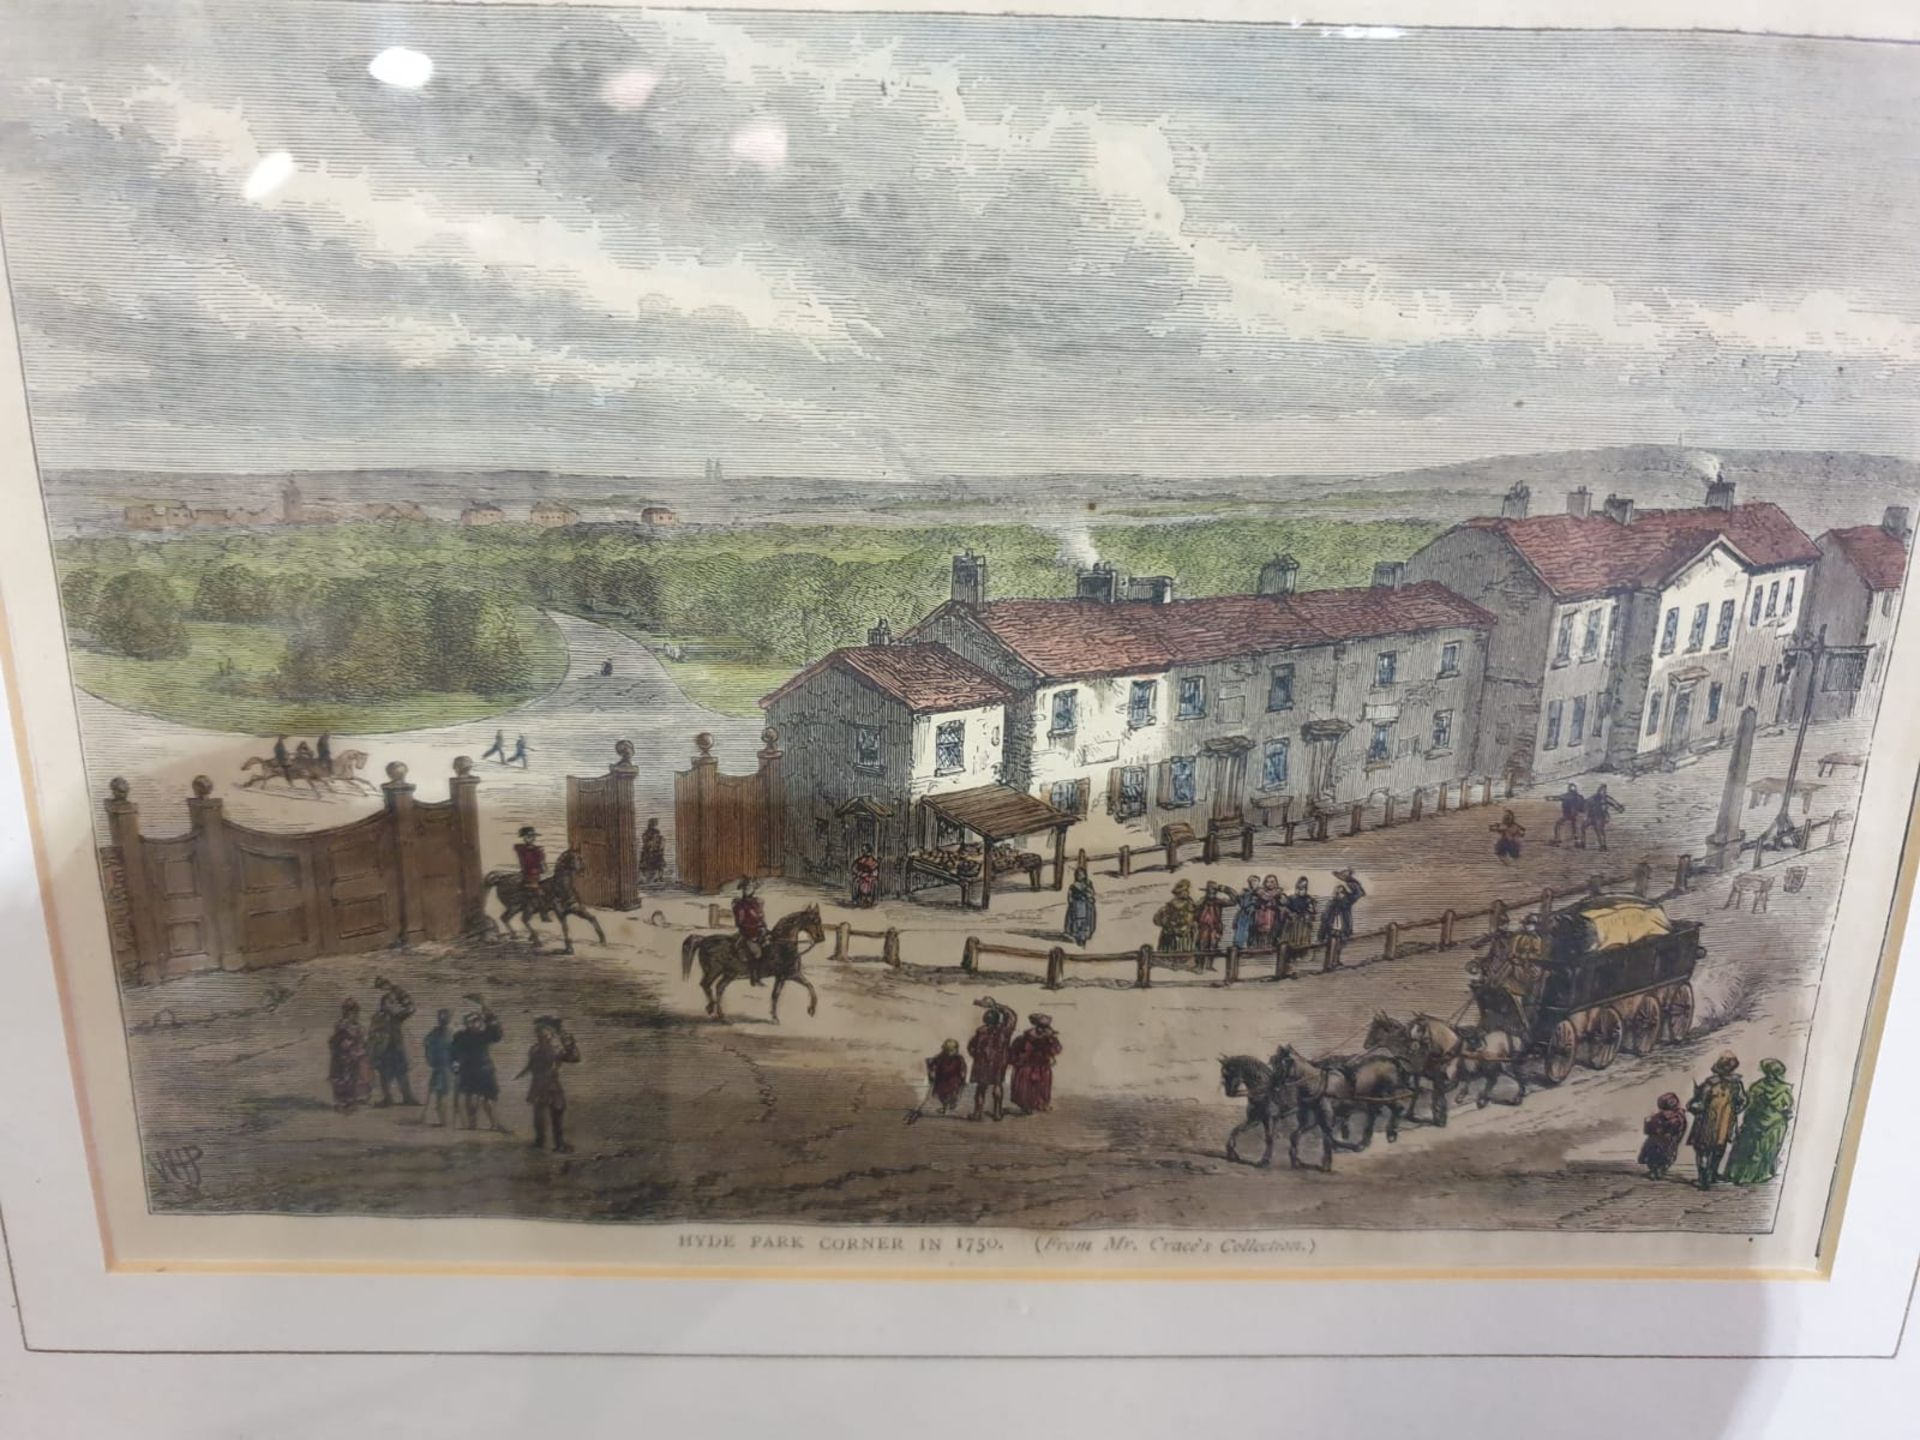 A set of 2 framed coloured lithographs APSLEY HOUSE AND PARK LANE. HYDE PARK CORNER IN 1750. - Image 5 of 5